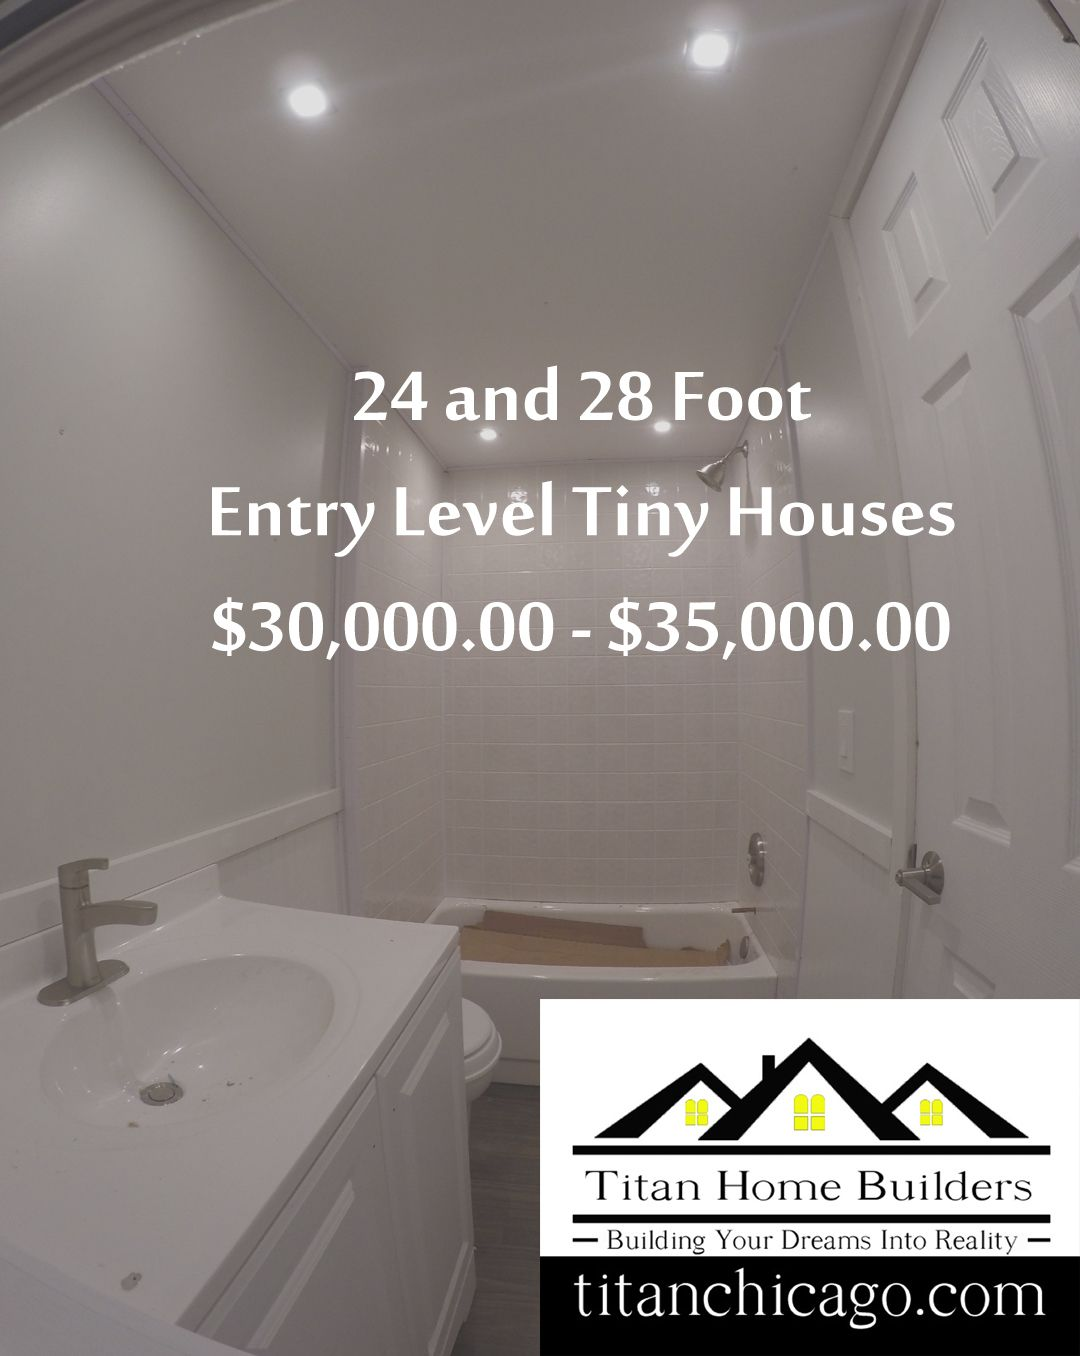 28 Foot Entry Level Tiny Houses For 30 000 00 35 000